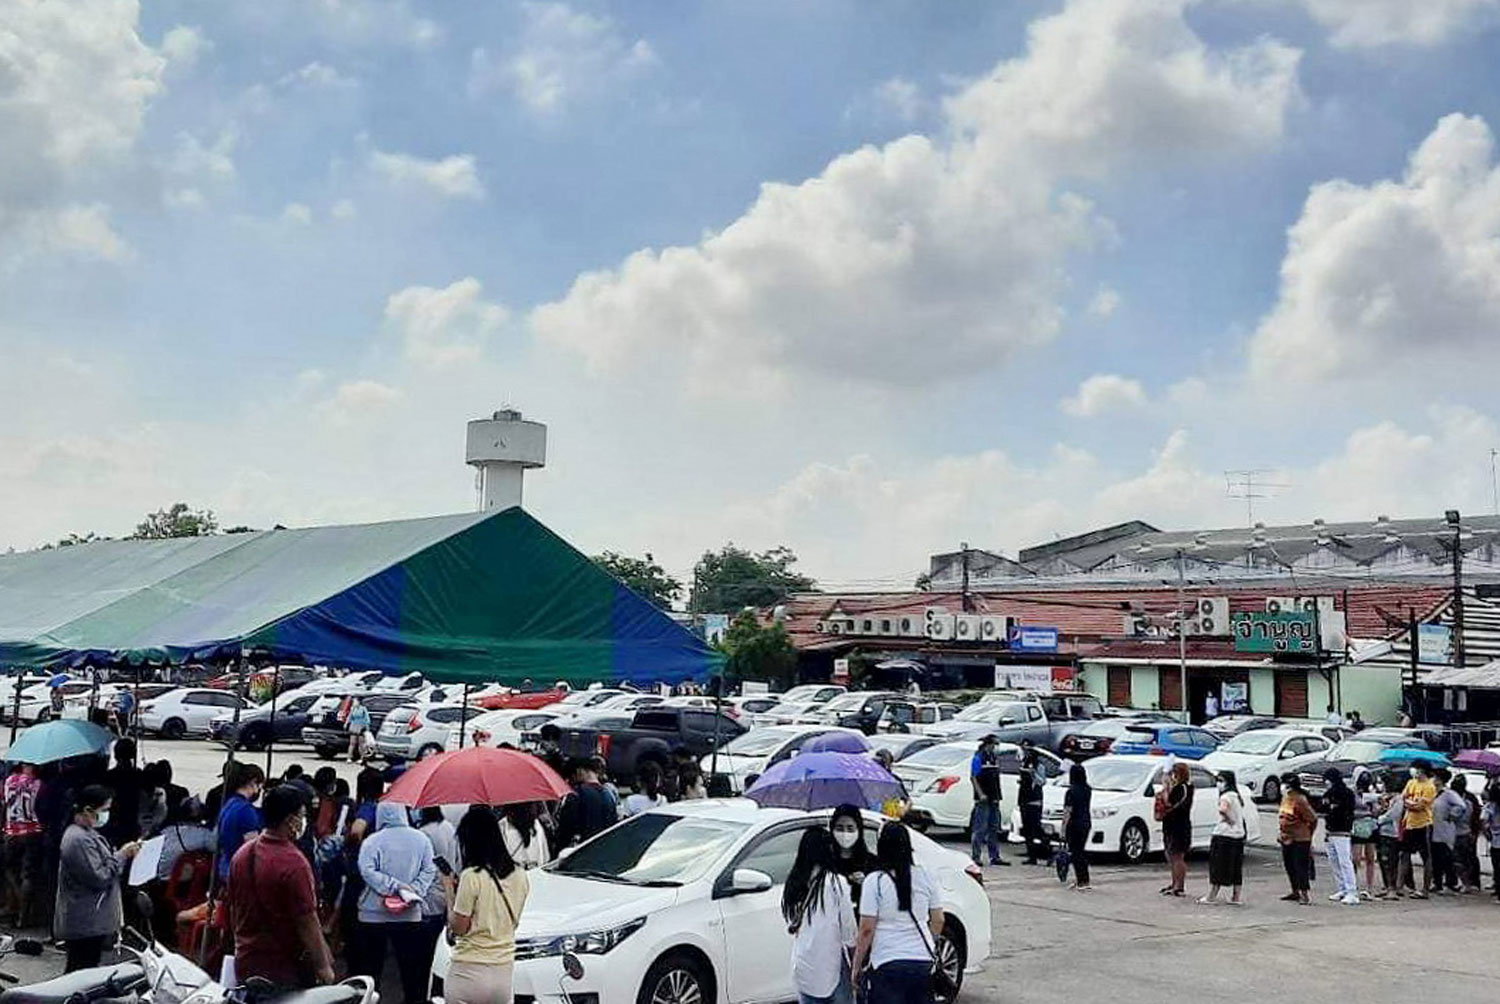 A crowd gathers at the Central Shrimp Market in Ayutthaya's Phra Nakhon Si Ayutthaya district on Sunday to get Covid-19 tests. (Photo: Sunthon Pongpao)